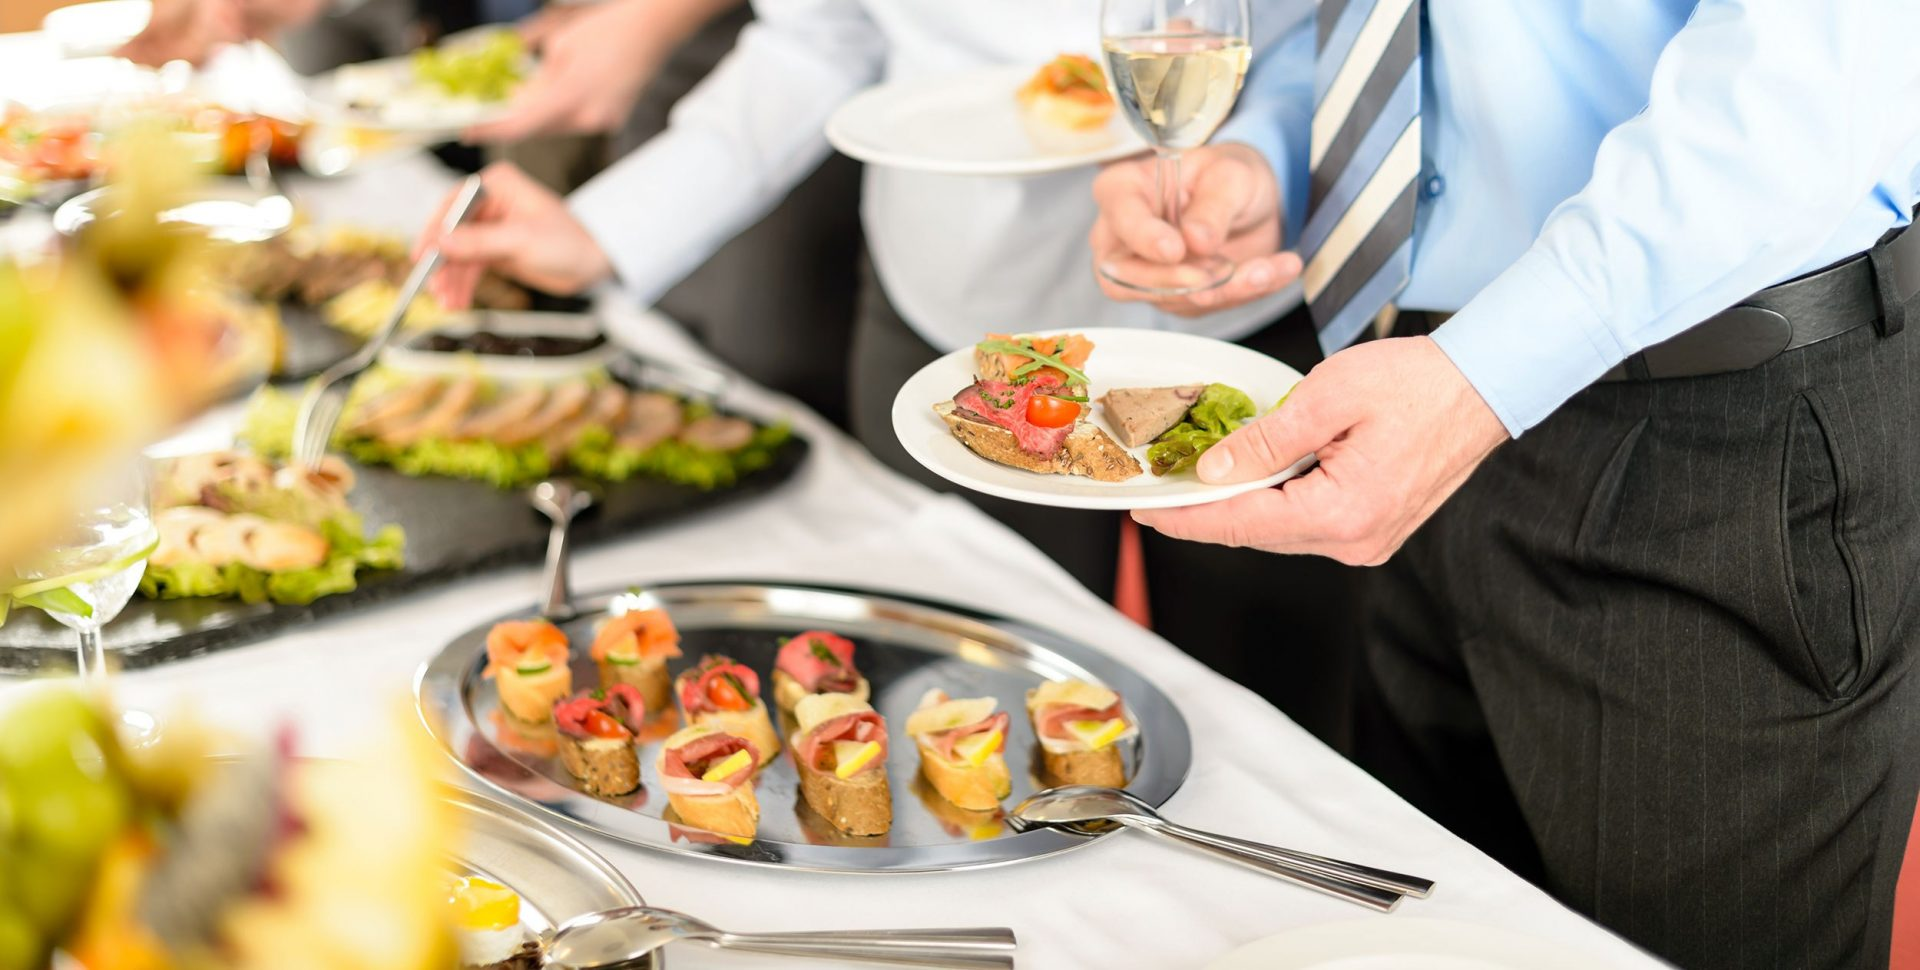 525-catering_management